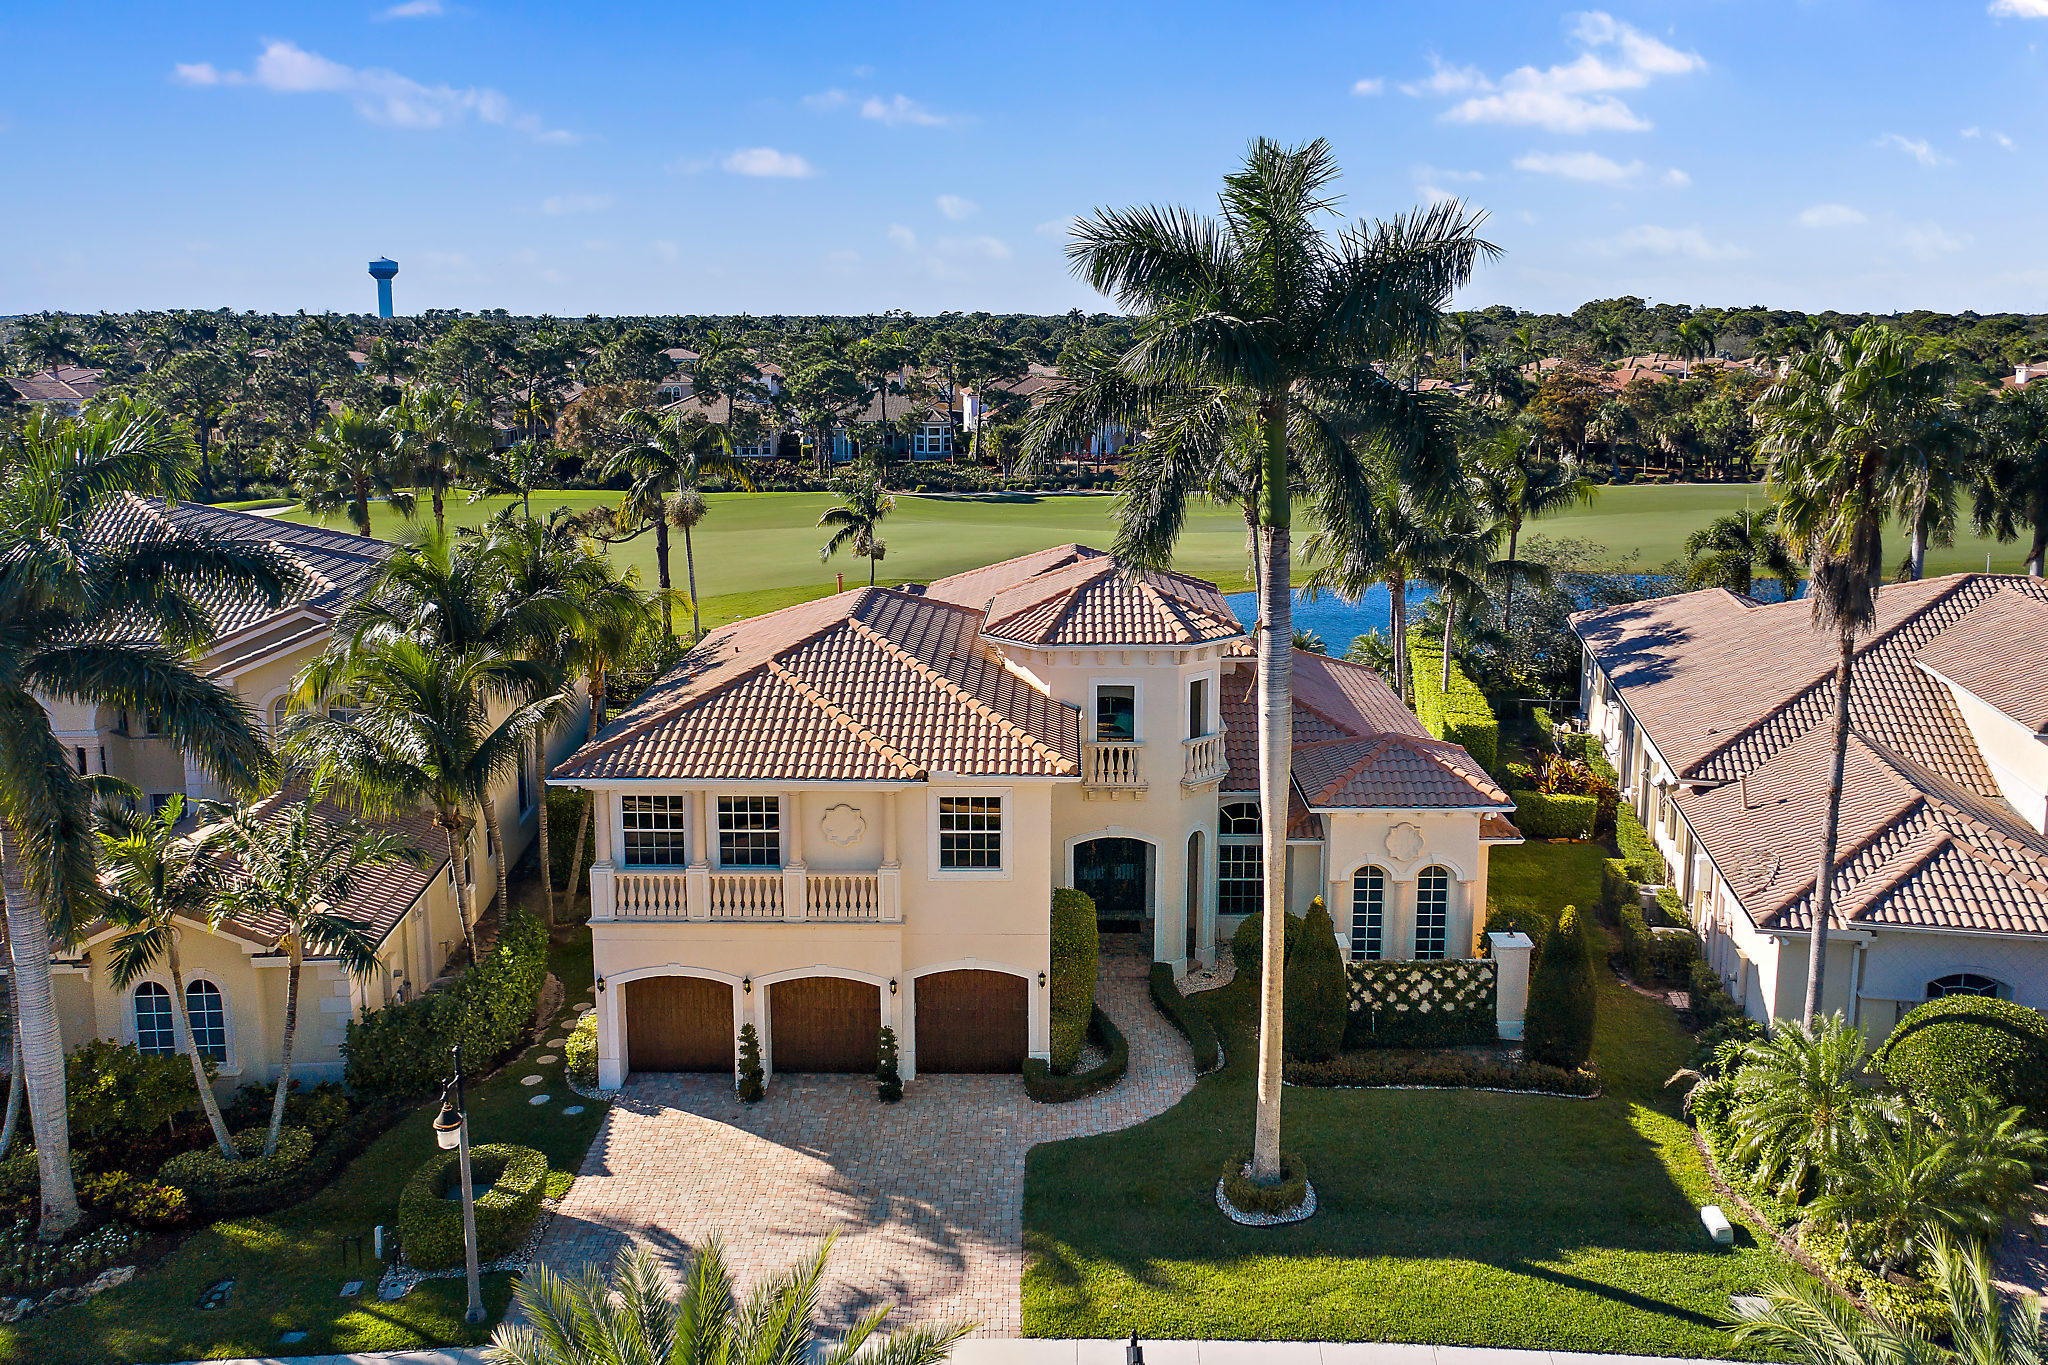 423 Savoie Drive, Palm Beach Gardens, Florida 33410, 5 Bedrooms Bedrooms, ,5.2 BathroomsBathrooms,A,Single family,Savoie,RX-10590315